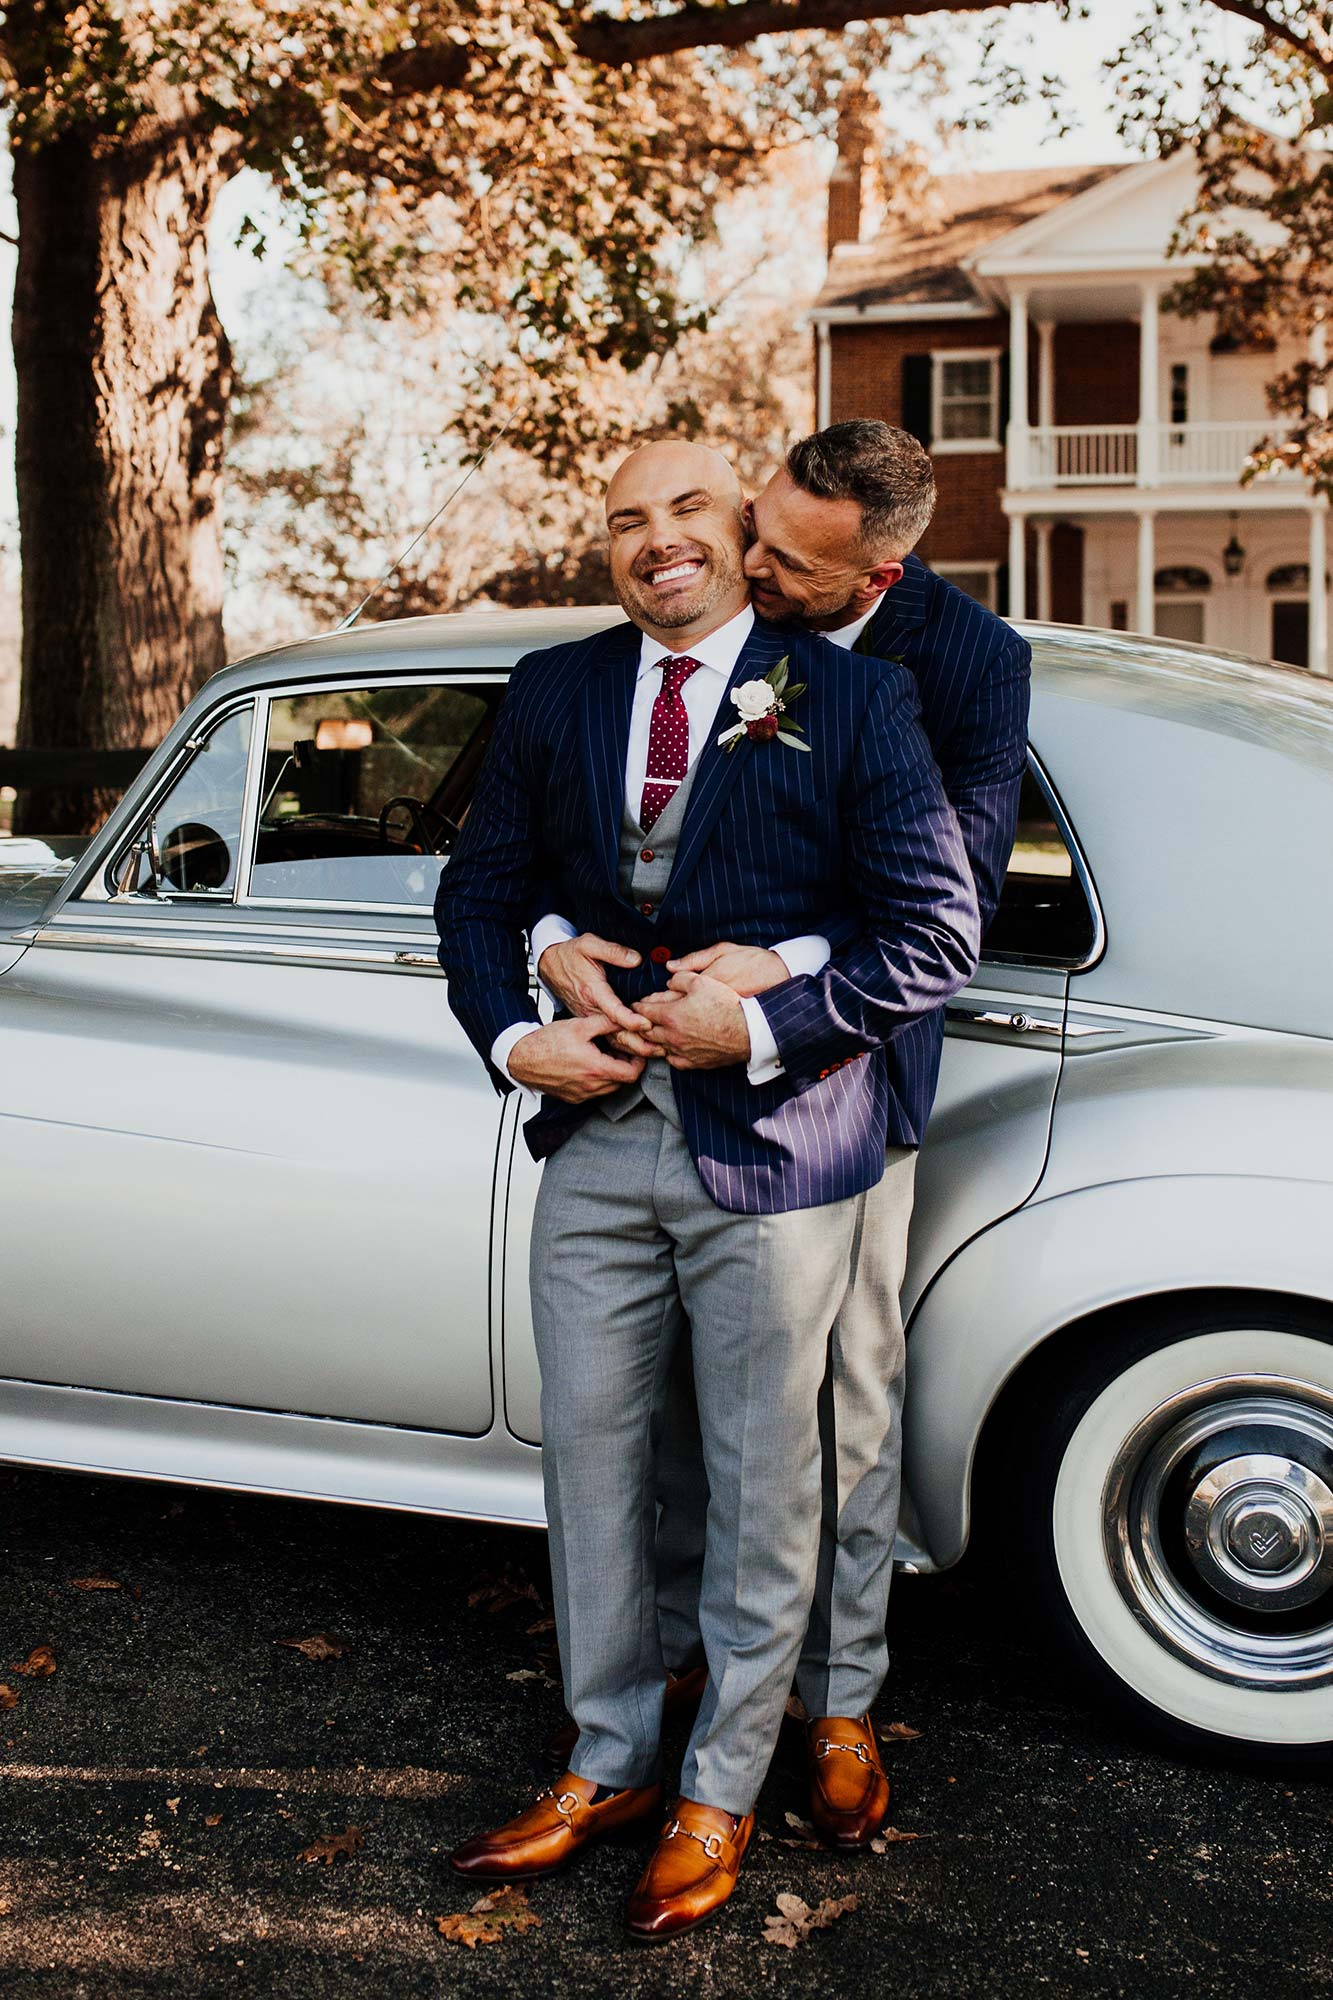 LGBTQ Louisville Kentucky Wedding at Hermitage Farm Crystal Ludwick Photo embrace by vintage car